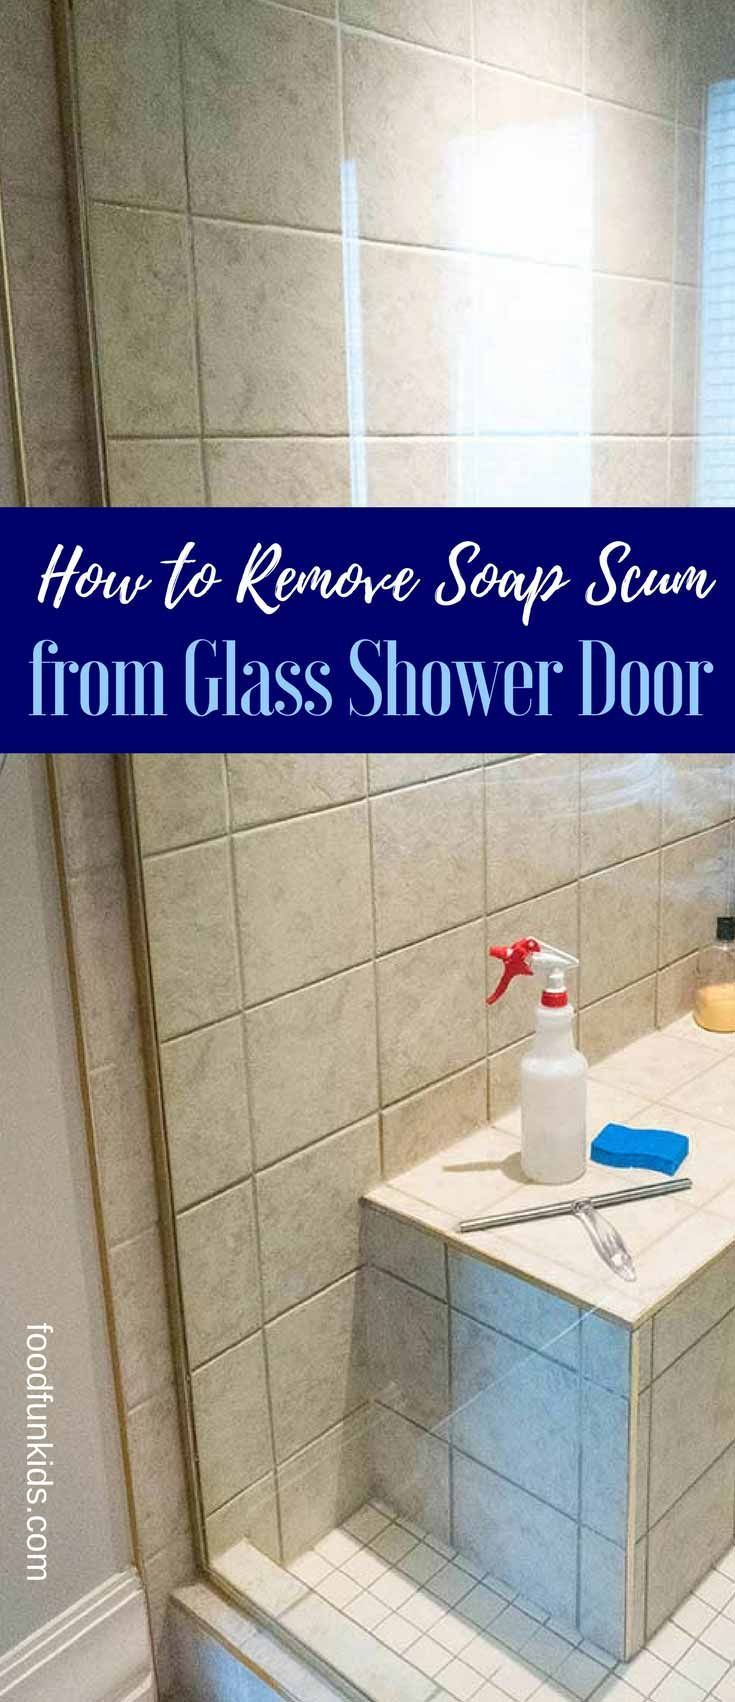 How To Remove Soap Scum From Glass Shower Door Food Fun Kids Cleaning Glass Shower Doors Shower Doors Glass Shower Doors